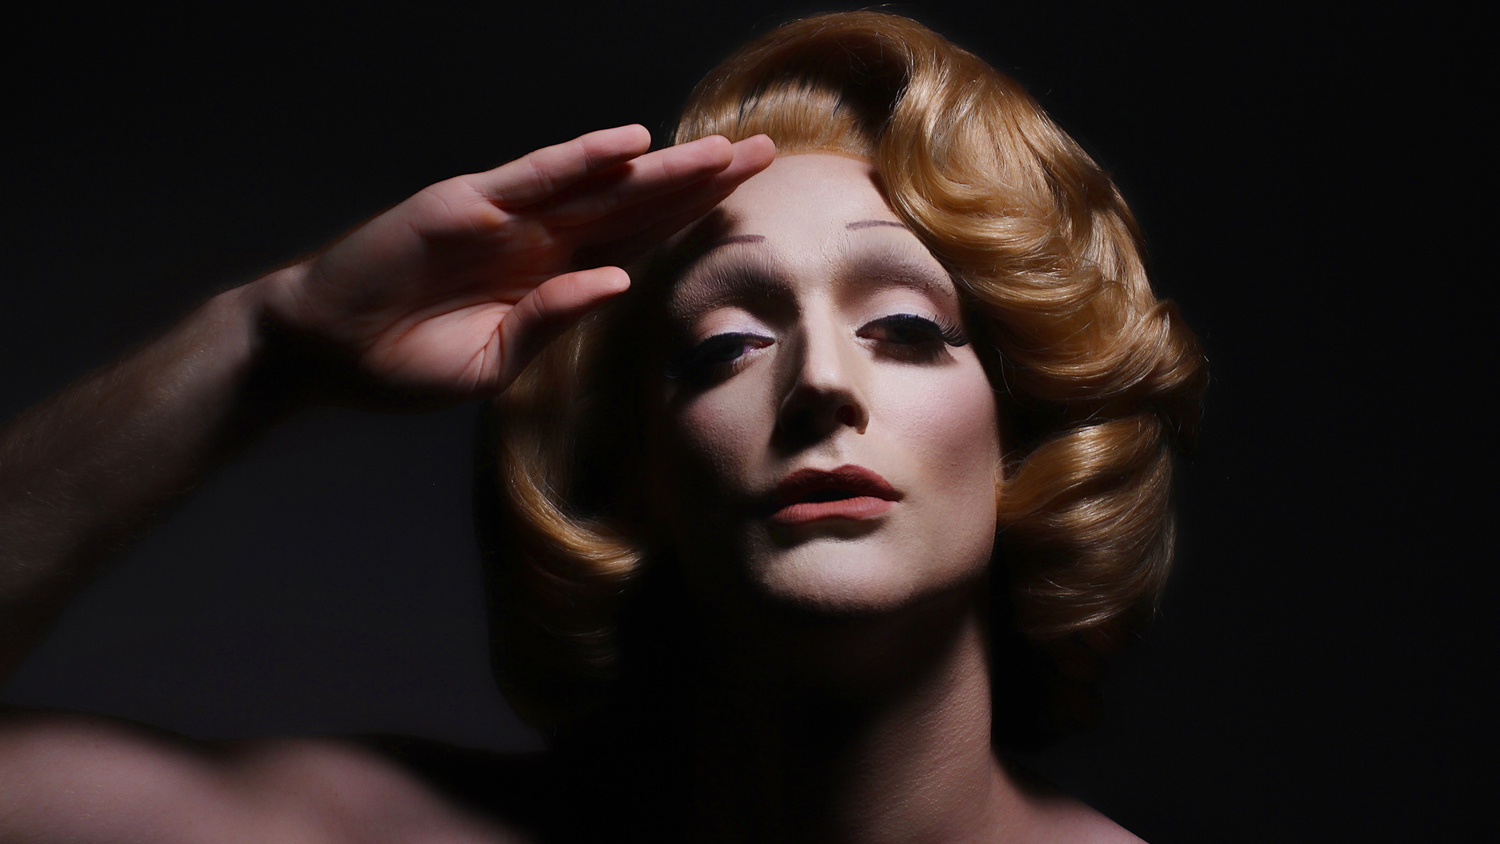 BWW Interview: Peter Groom Talks DIETRICH: NATURAL DUTY, Politics, Queer History and Visibility